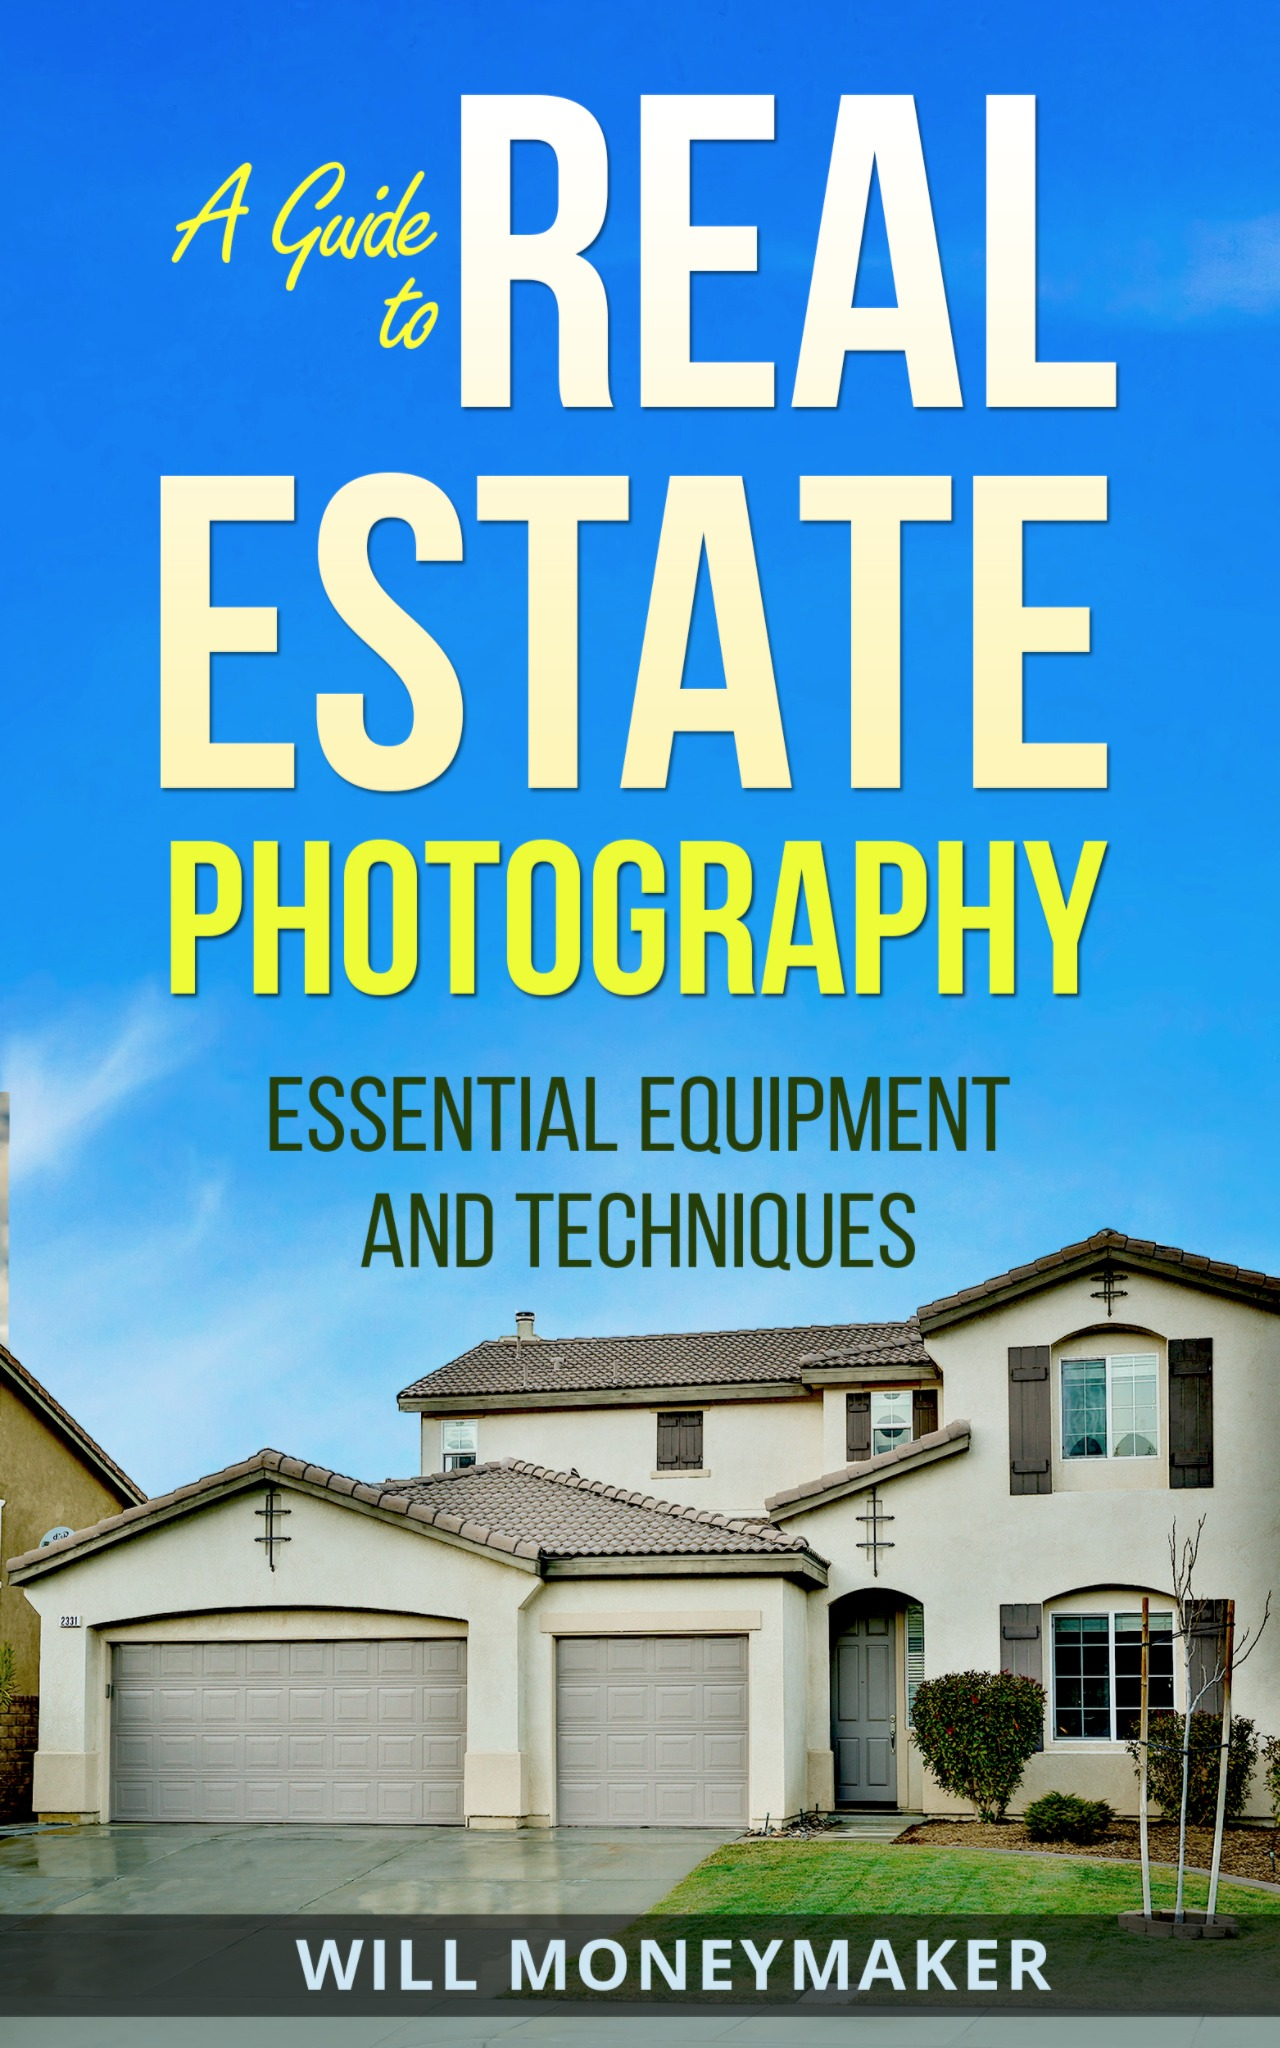 A Guide to Real Estate Photography